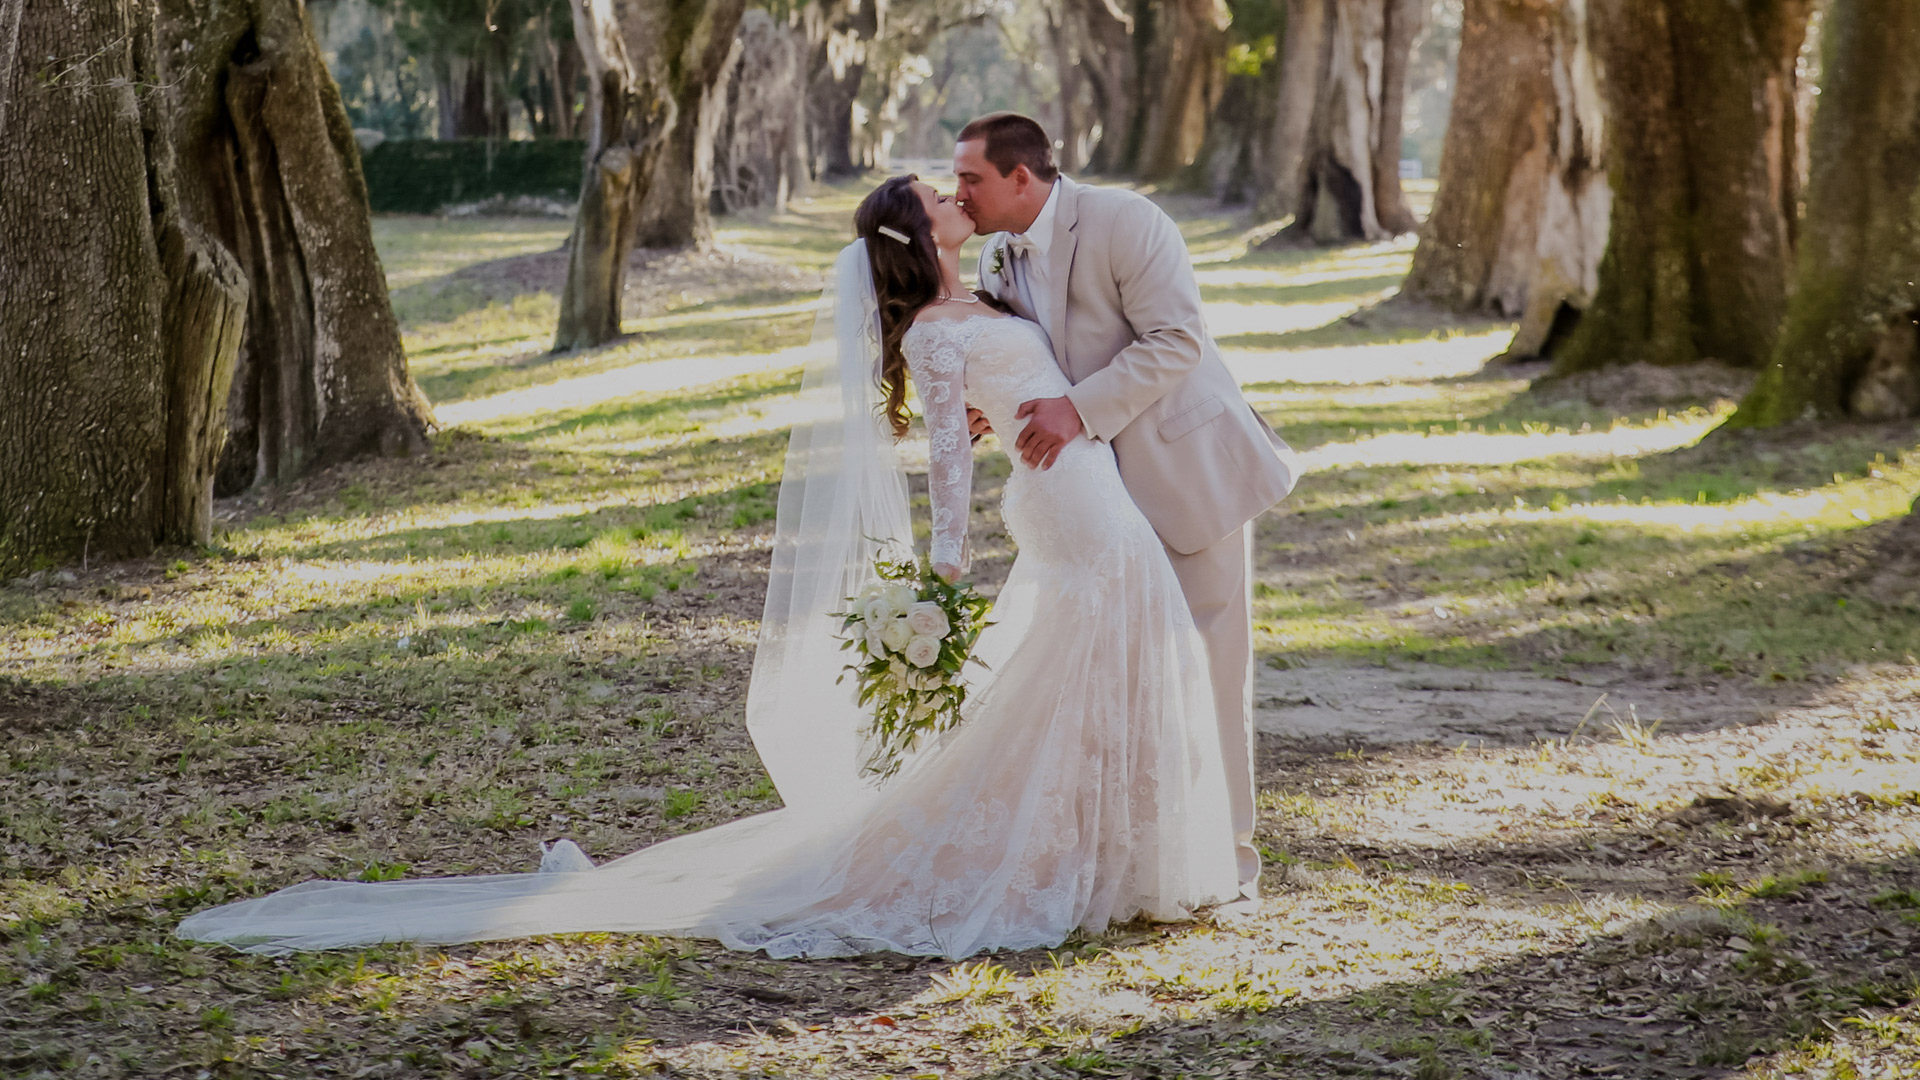 Check portfolios, pricing and availability for wedding photographers in Savannah